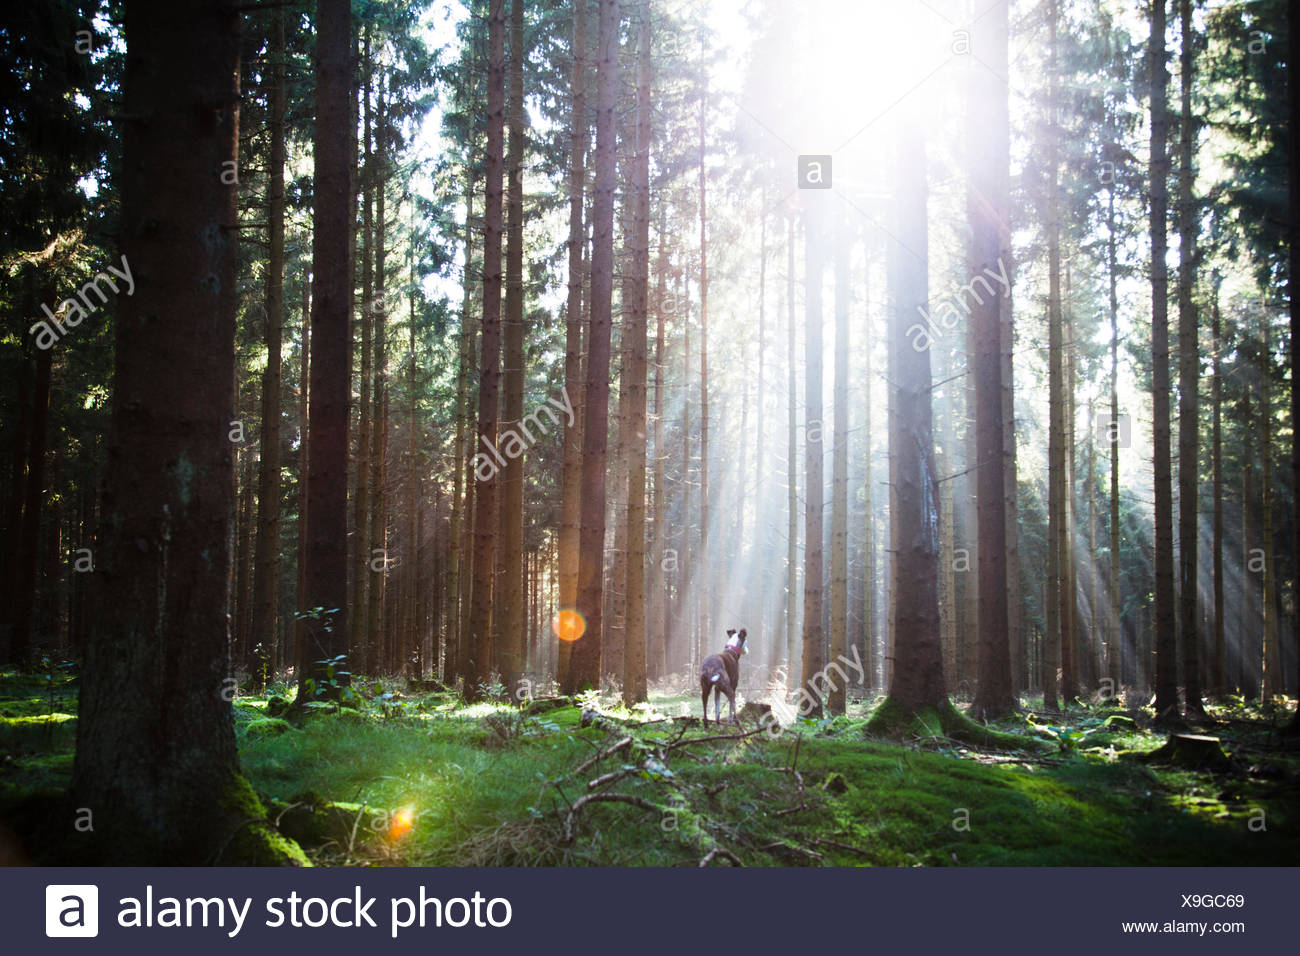 Spruce forest, sunlight, dog - Stock Image